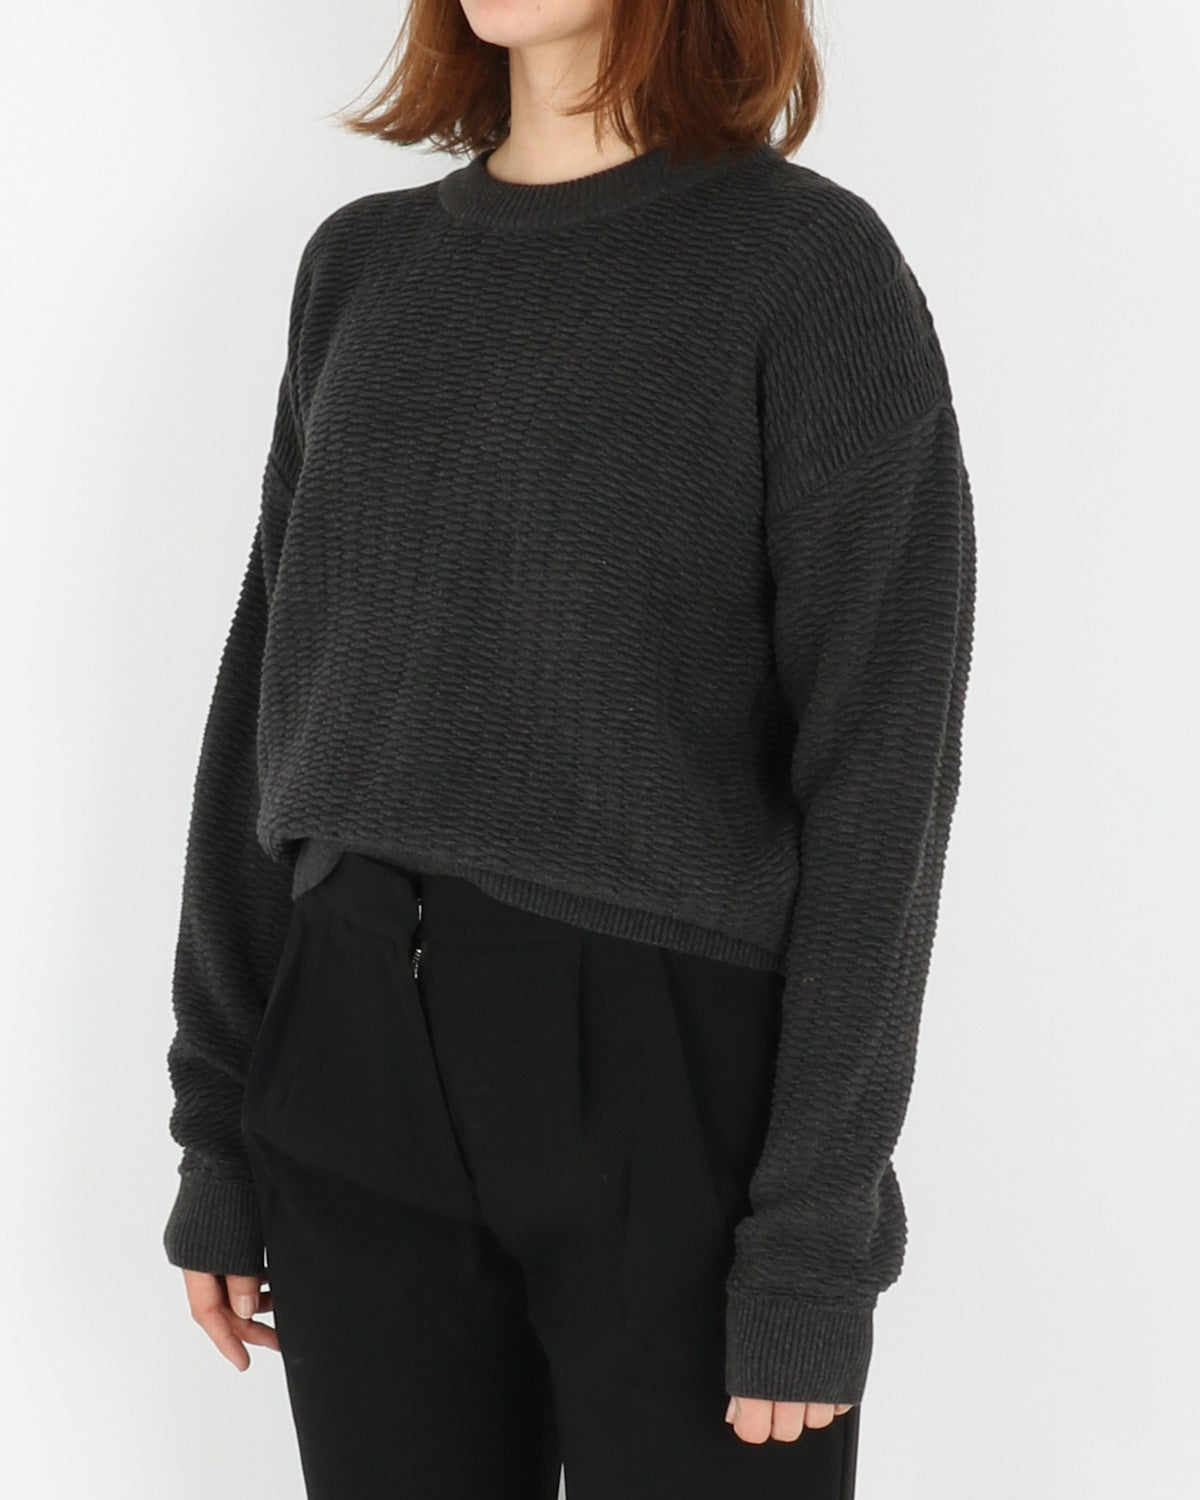 basic apparel_kela sweater_antracit_2_4